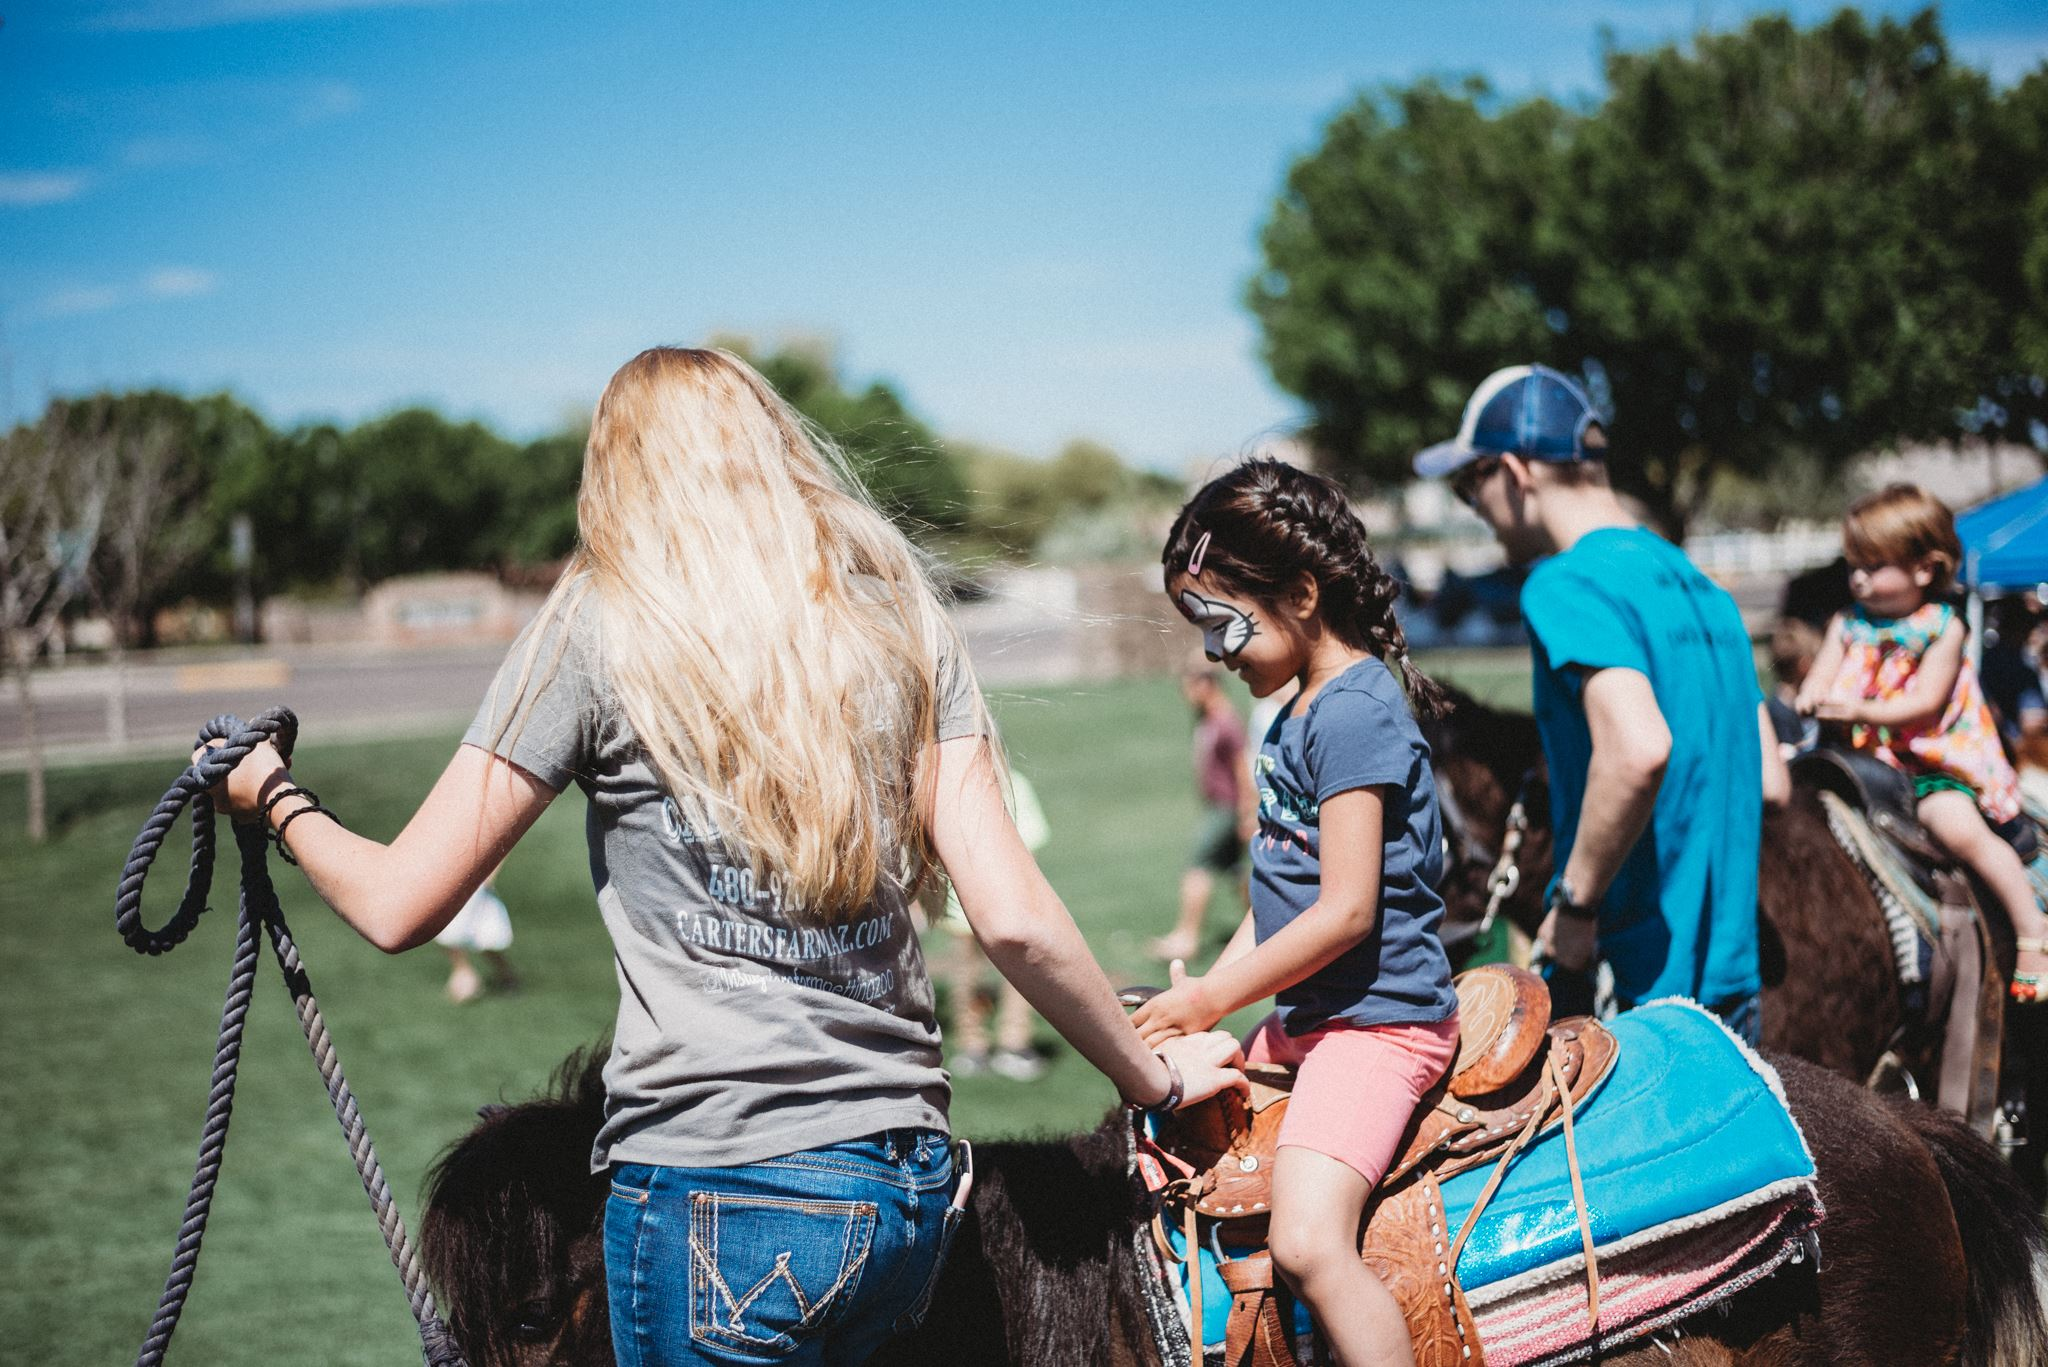 Assistant Walking Alongside a Brown Pony Rode by a Girl in Face Paint